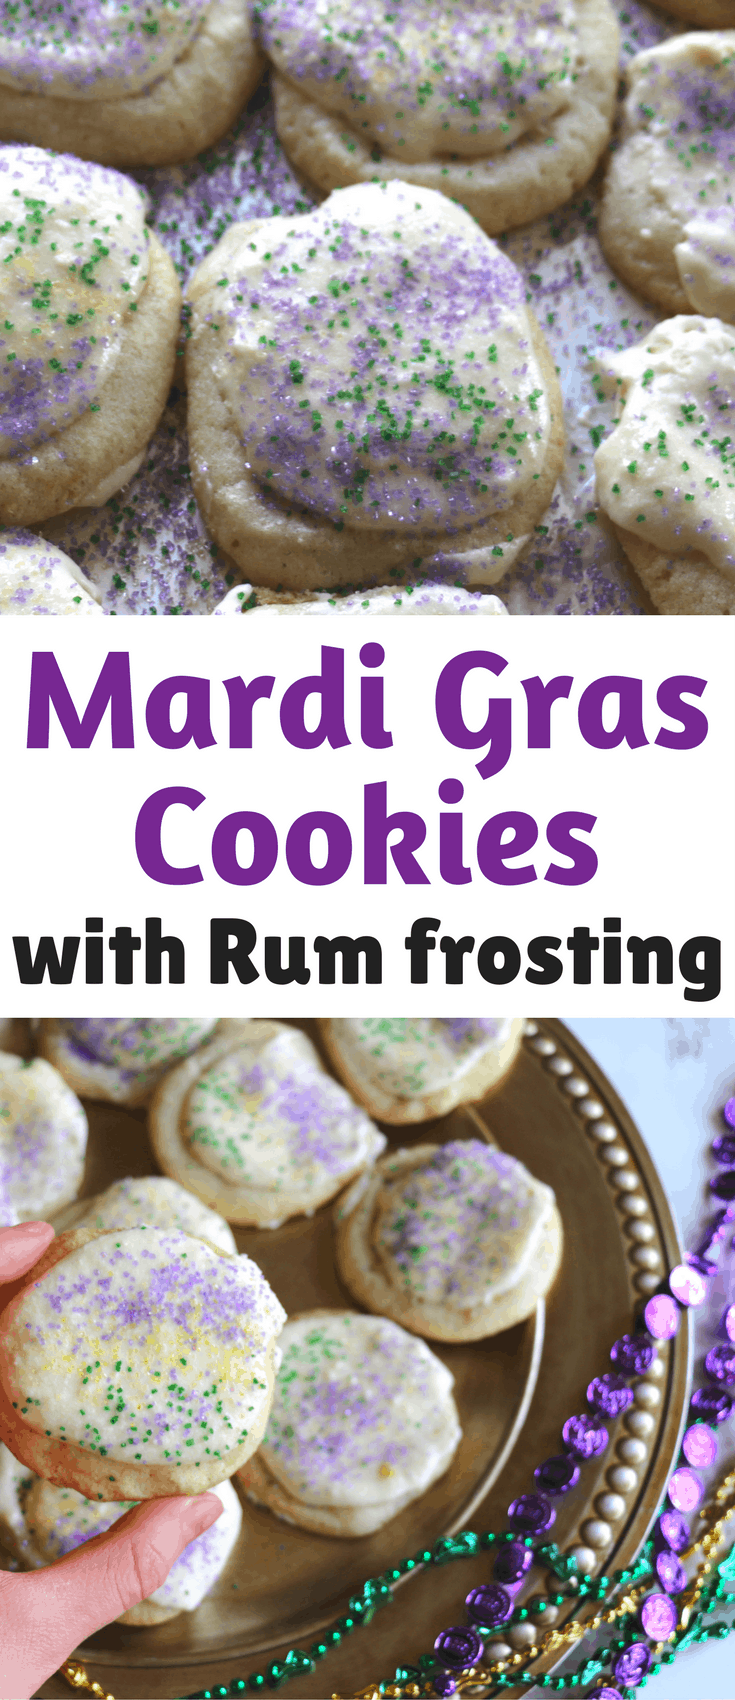 This Easy Mardi Gras Cookies with Rum Frosting recipe is inspired by King Cakes. You'll feel like you're celebrating Fat Tuesday in New Orleans.